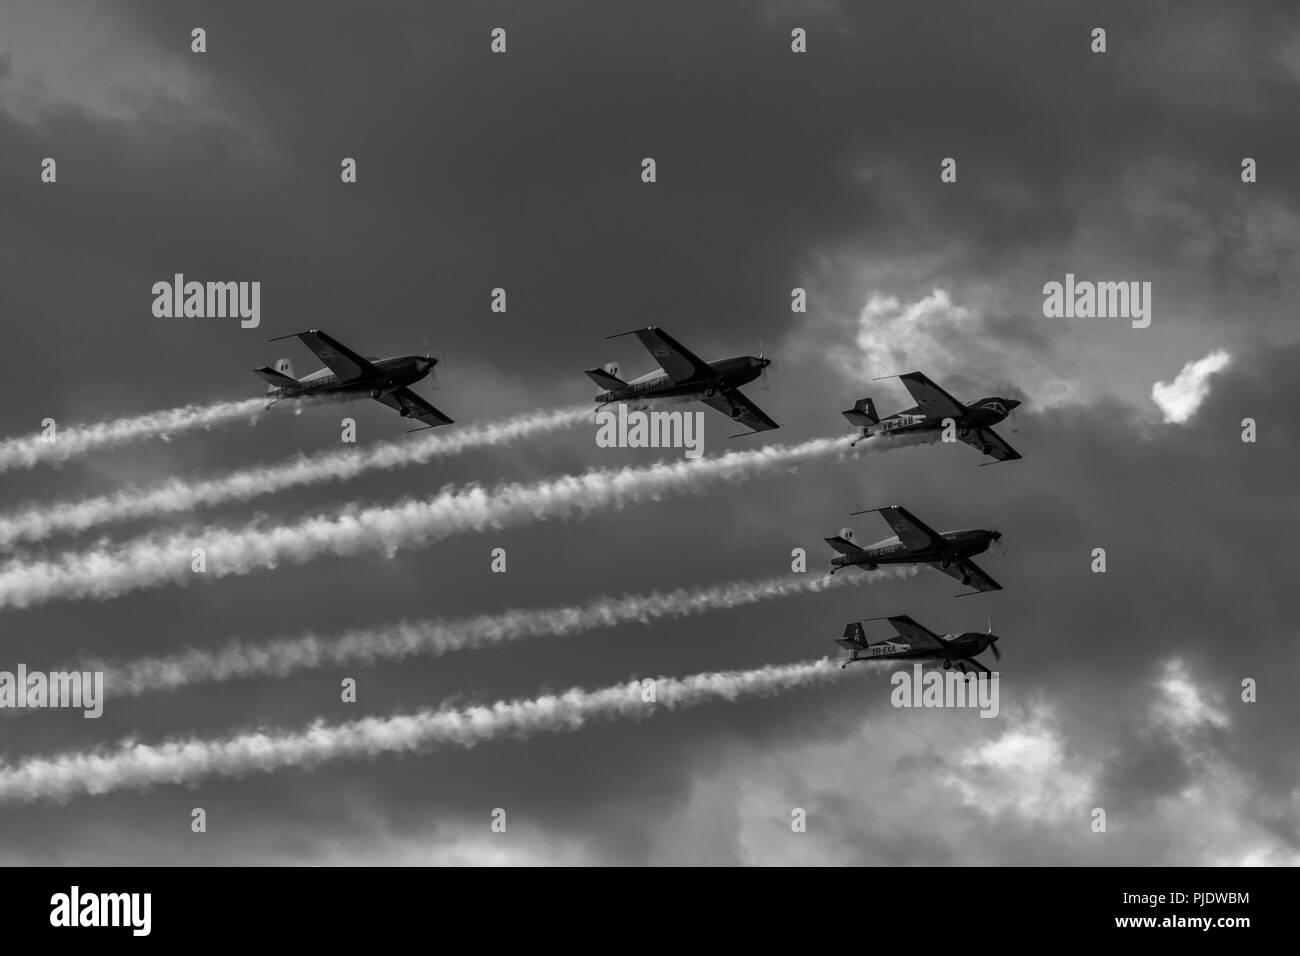 Pilots drawing on the sky... - Stock Image